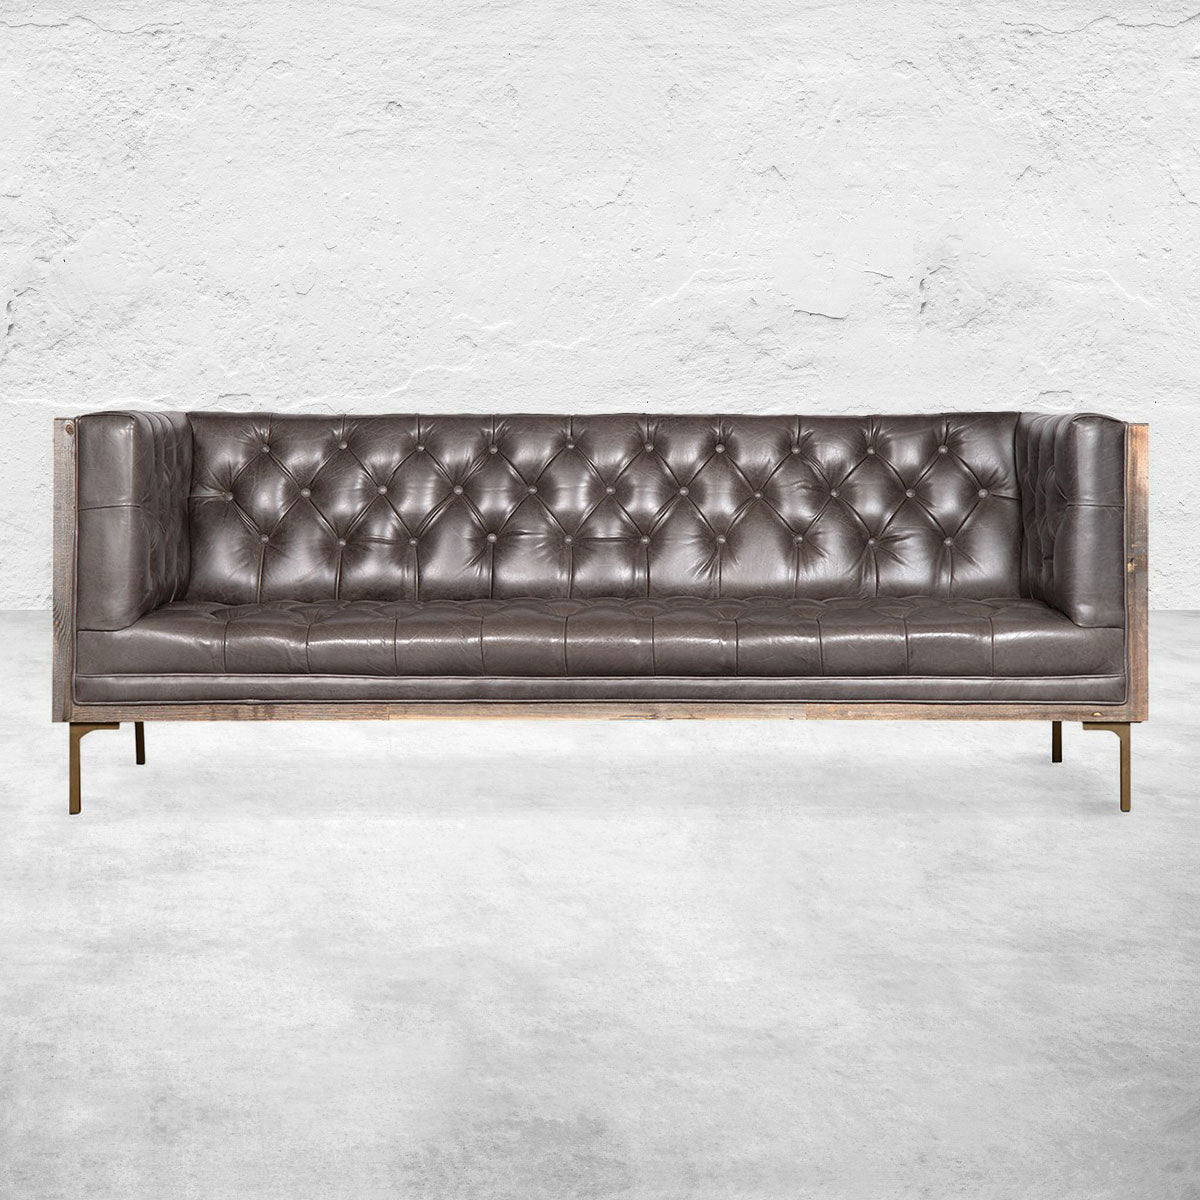 Koenig Cody Sofa in Leather